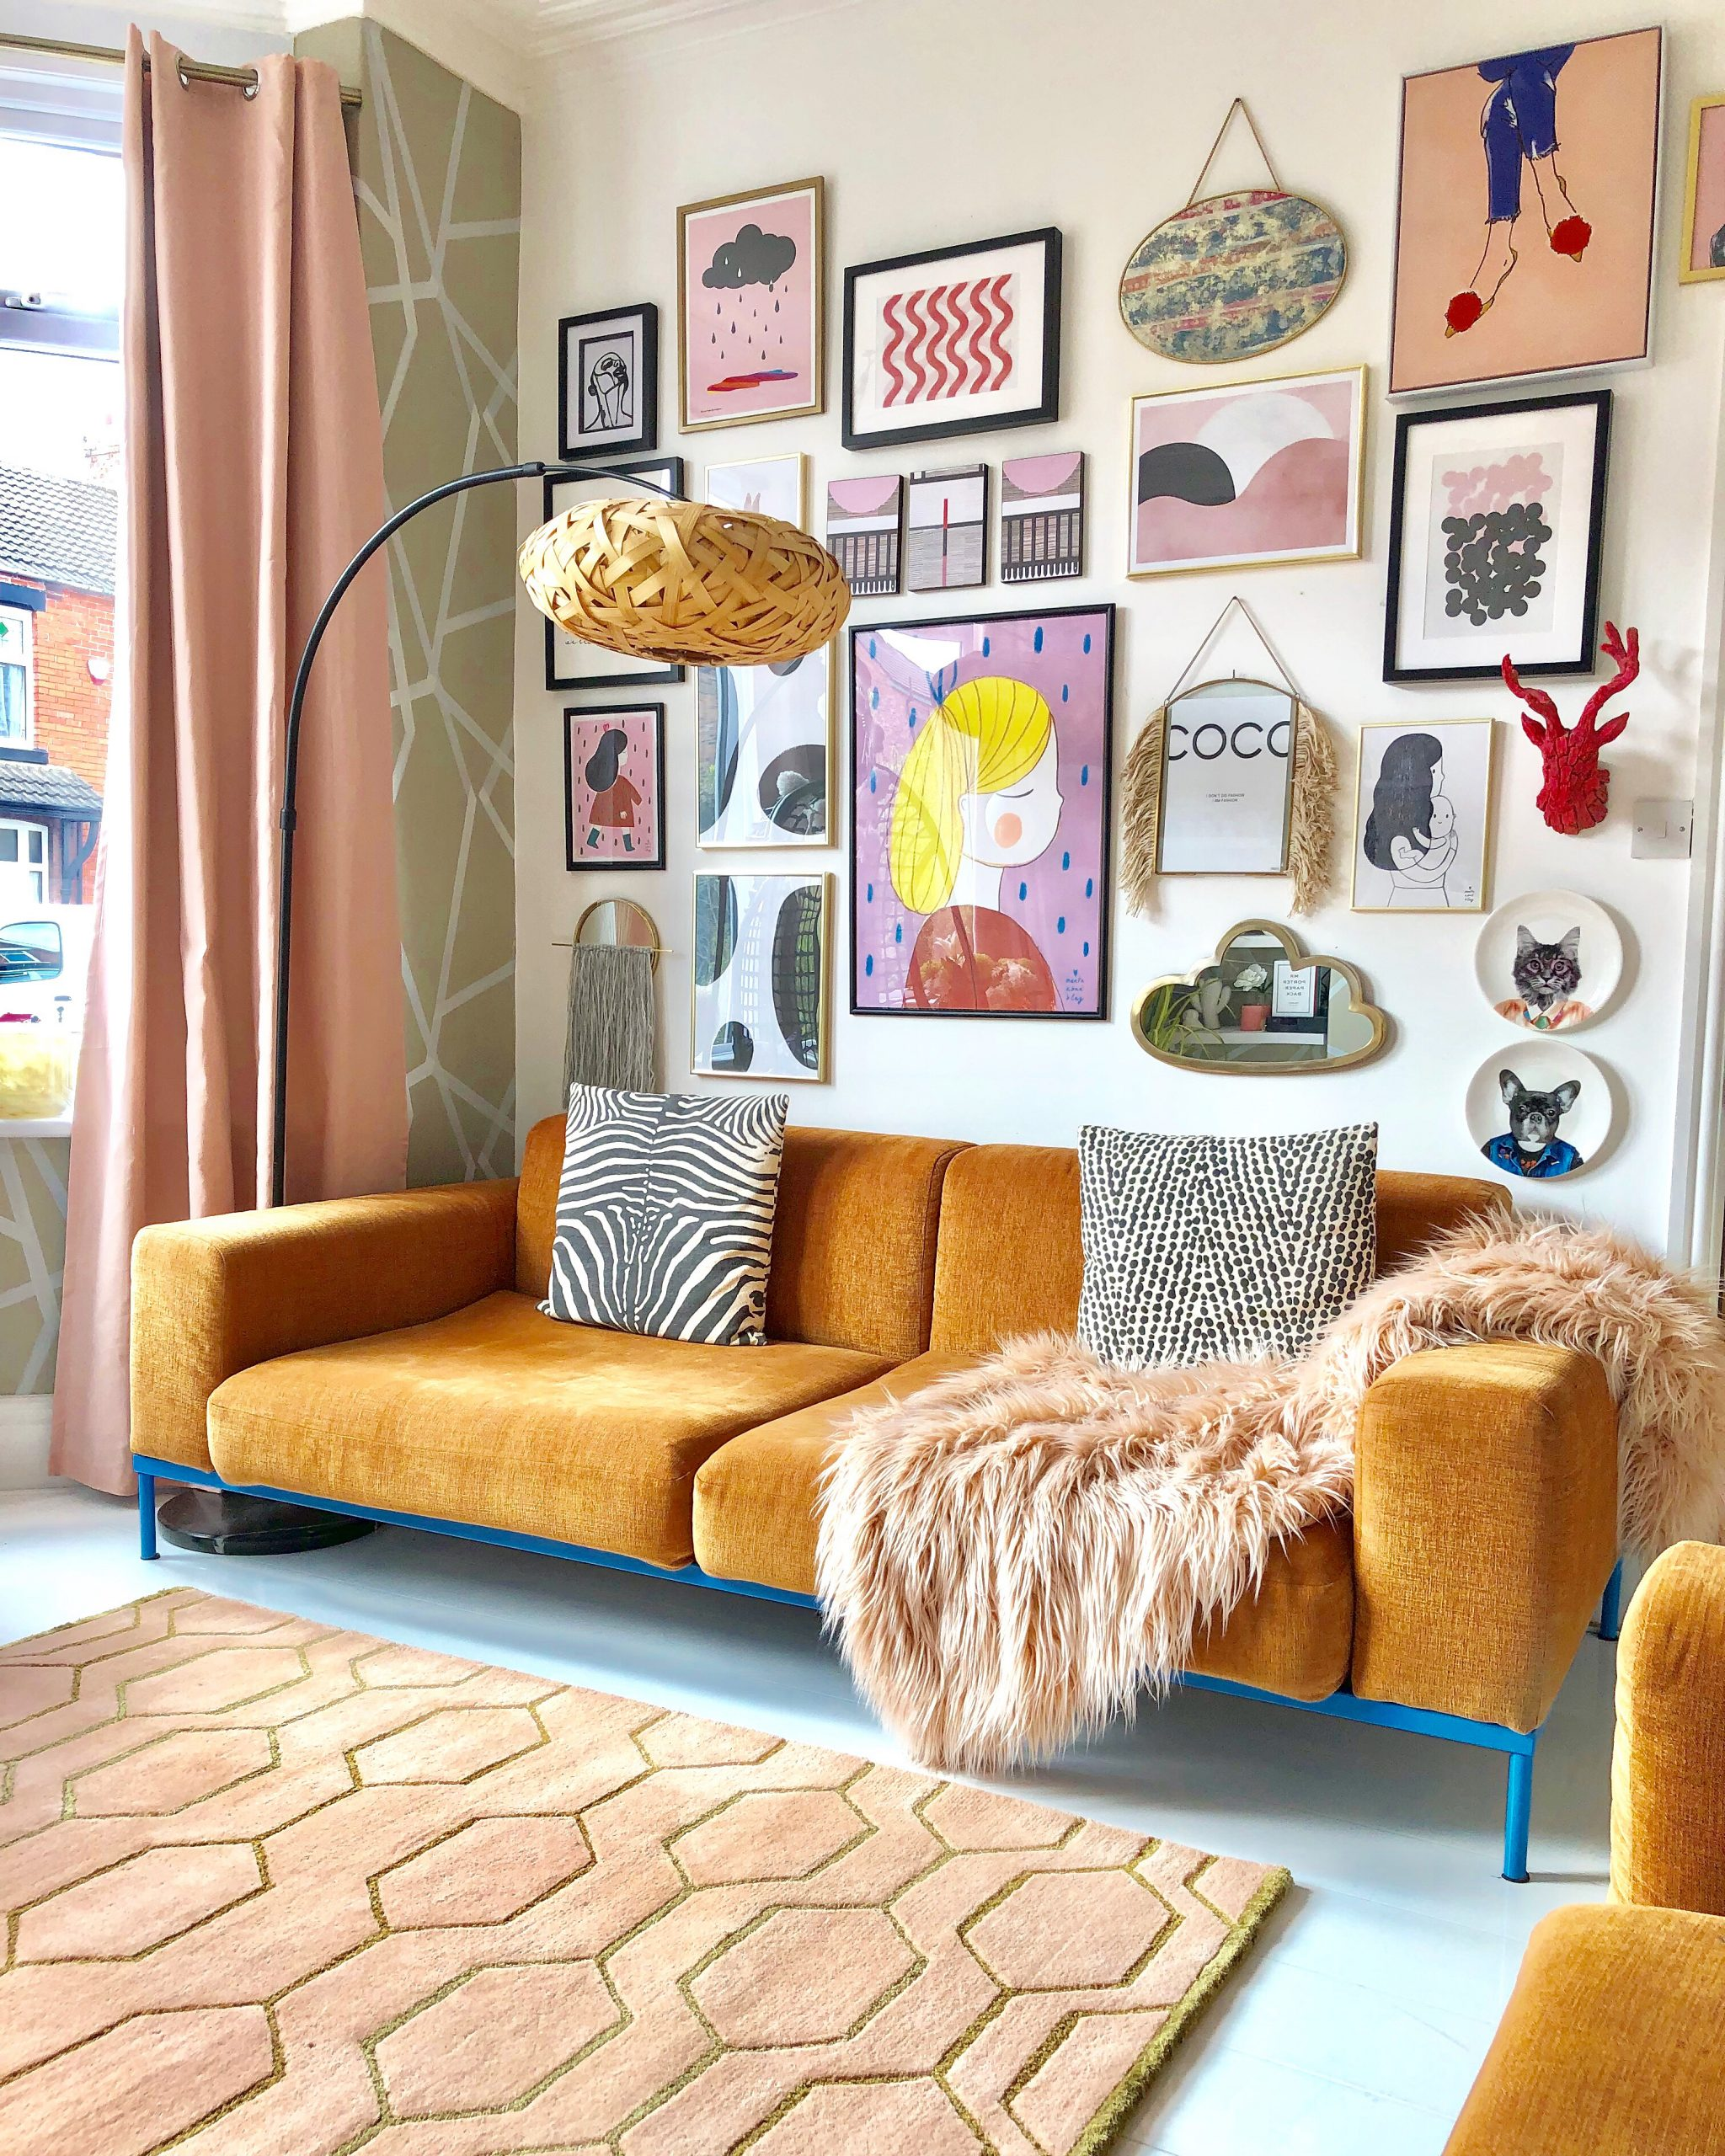 The Artful Play Of Pattern Eclectic Decor Sarah Hubbard The Interior Editor